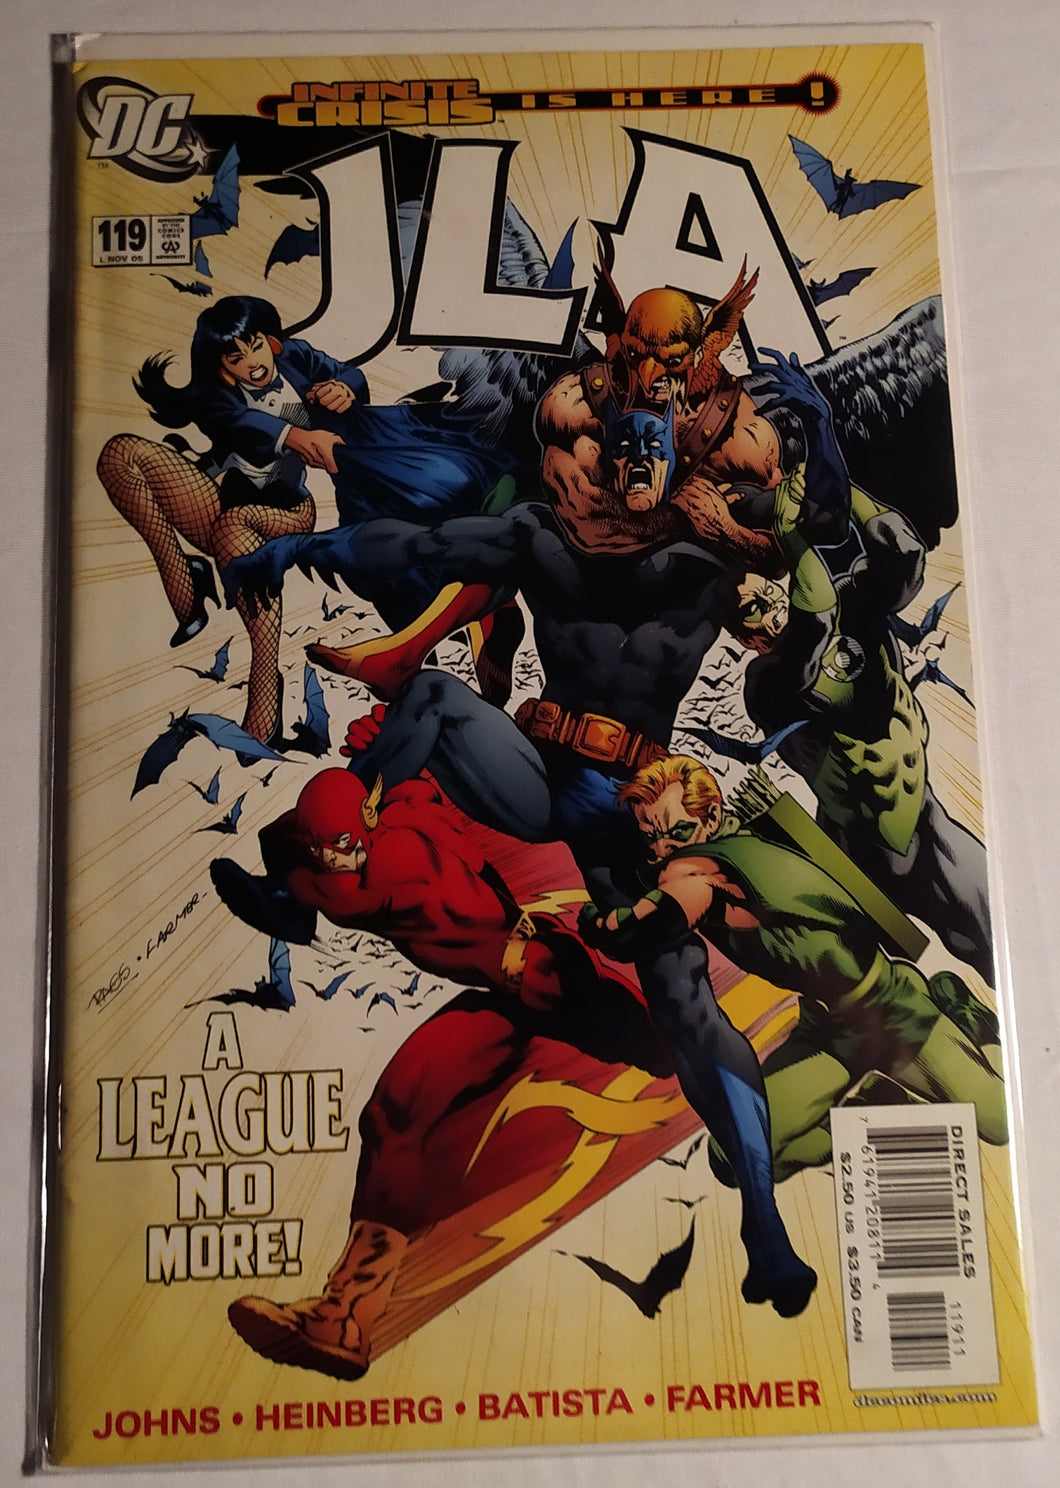 JLA #119 - Infinite Crisis Is Here! A League No More!